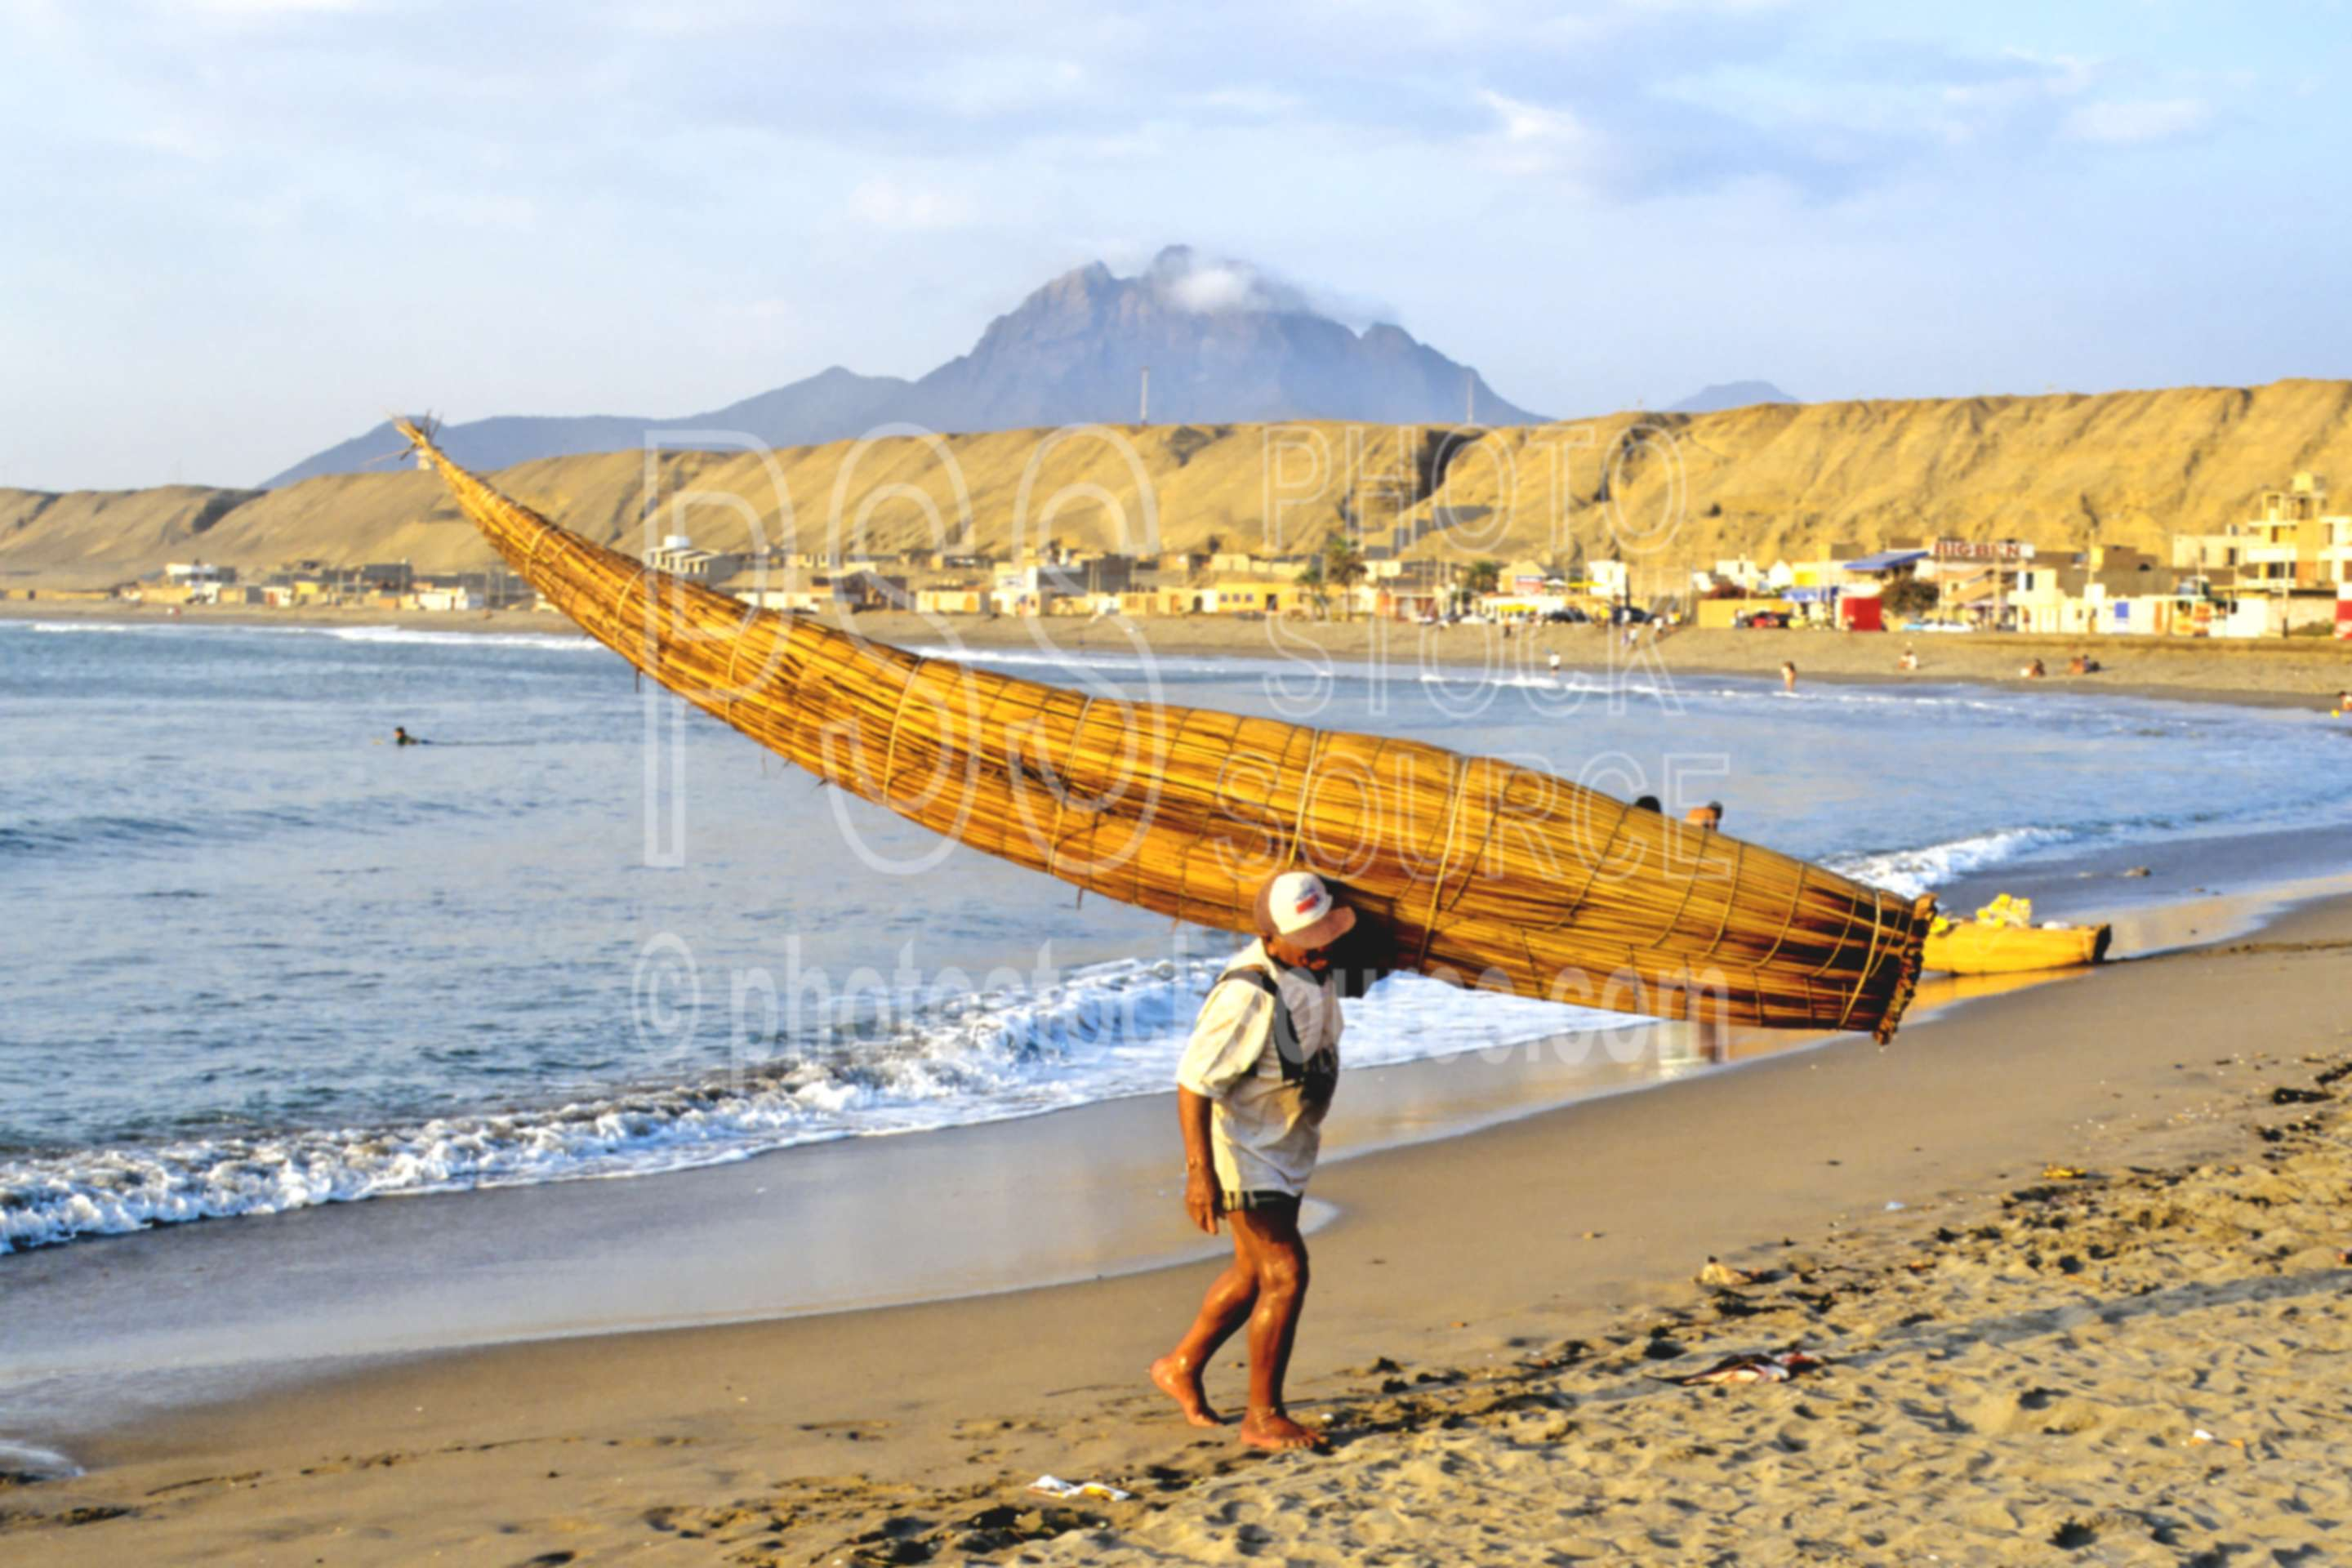 Fisherman and Caballito,boat,fisherman,ocean,work,worker,seascapes,boats